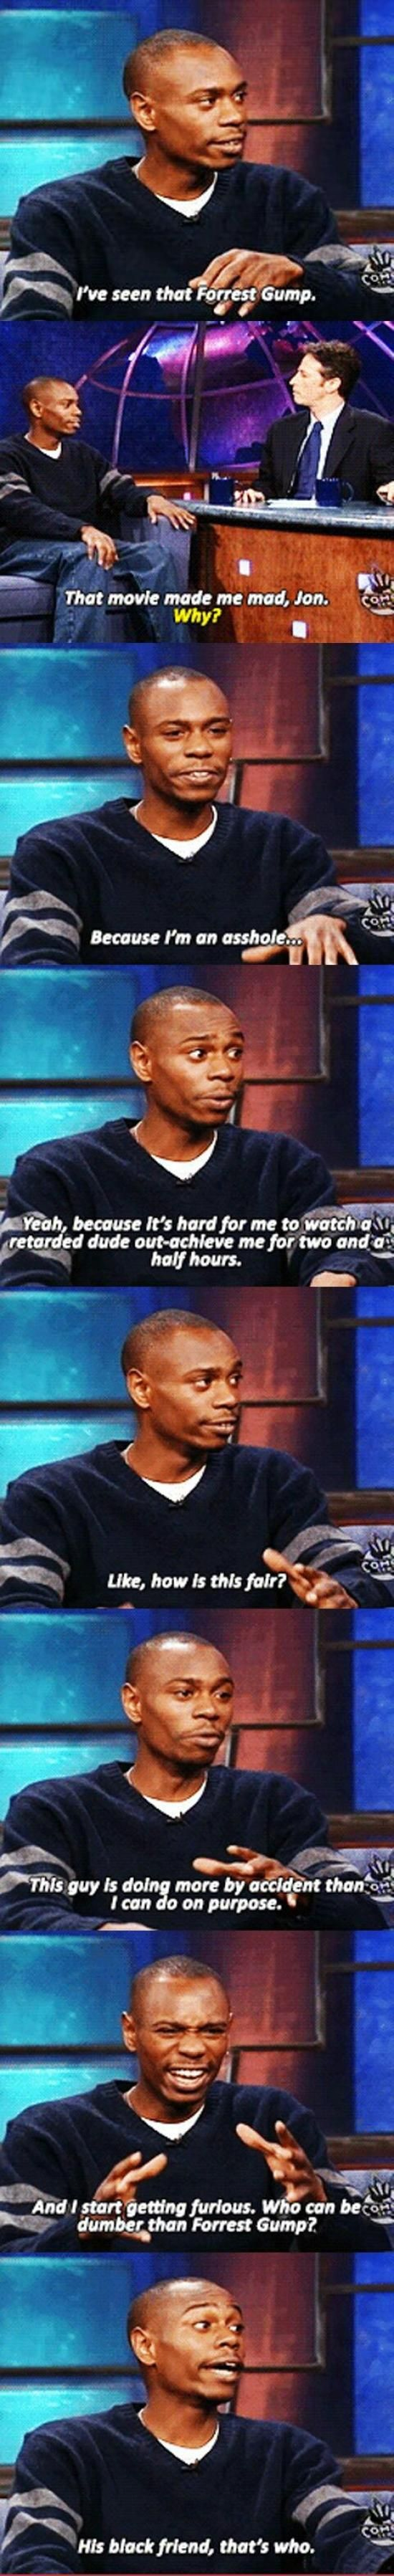 Oh Dave Chappelle